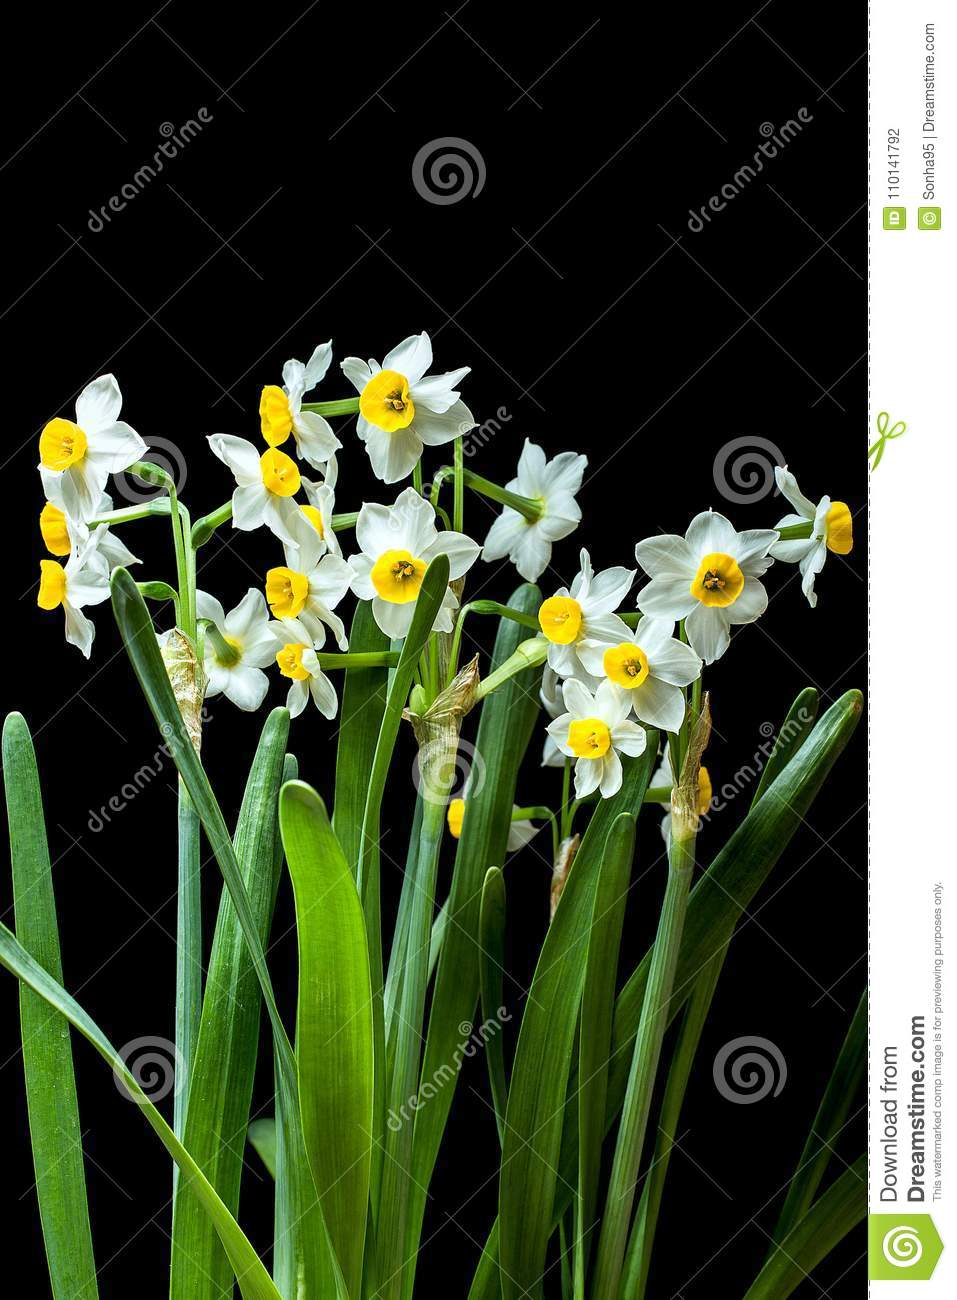 Narcissus -The Daffodils Are Small, White And Have A